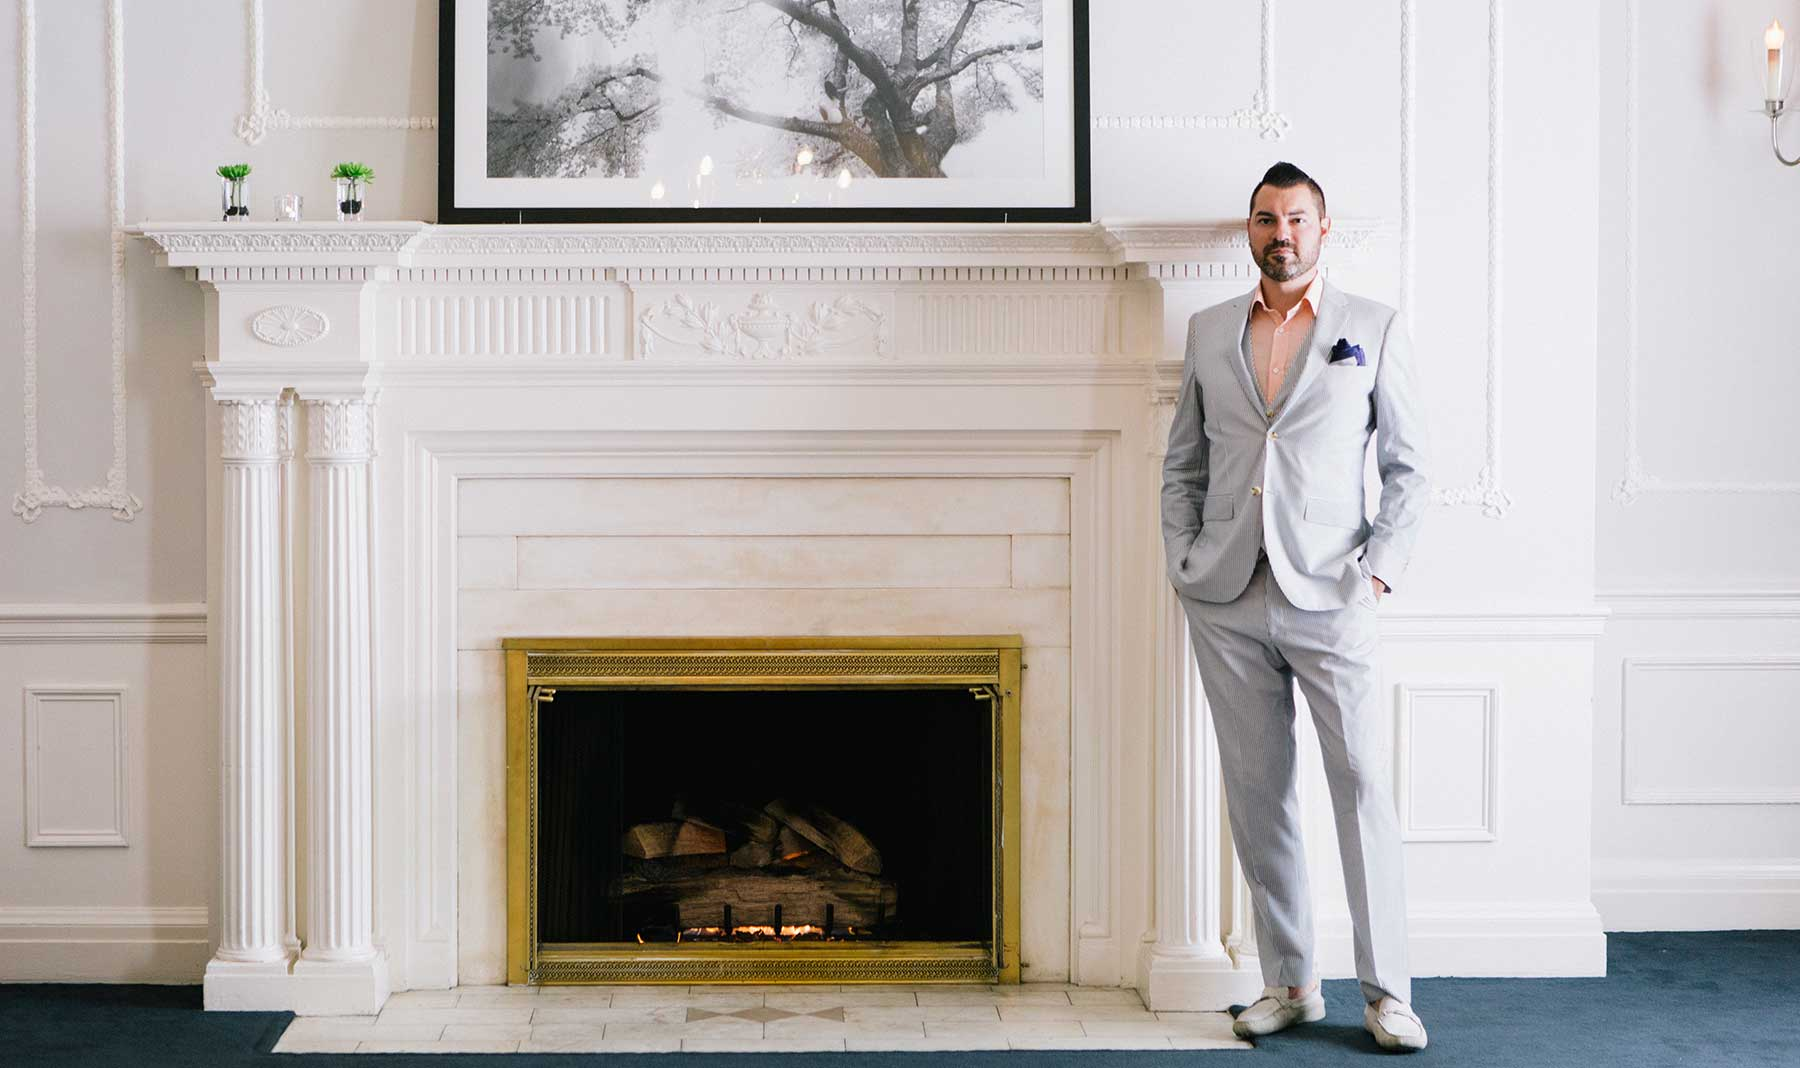 Tyson Villeneuve in a light coloured suit in front of a fireplace.